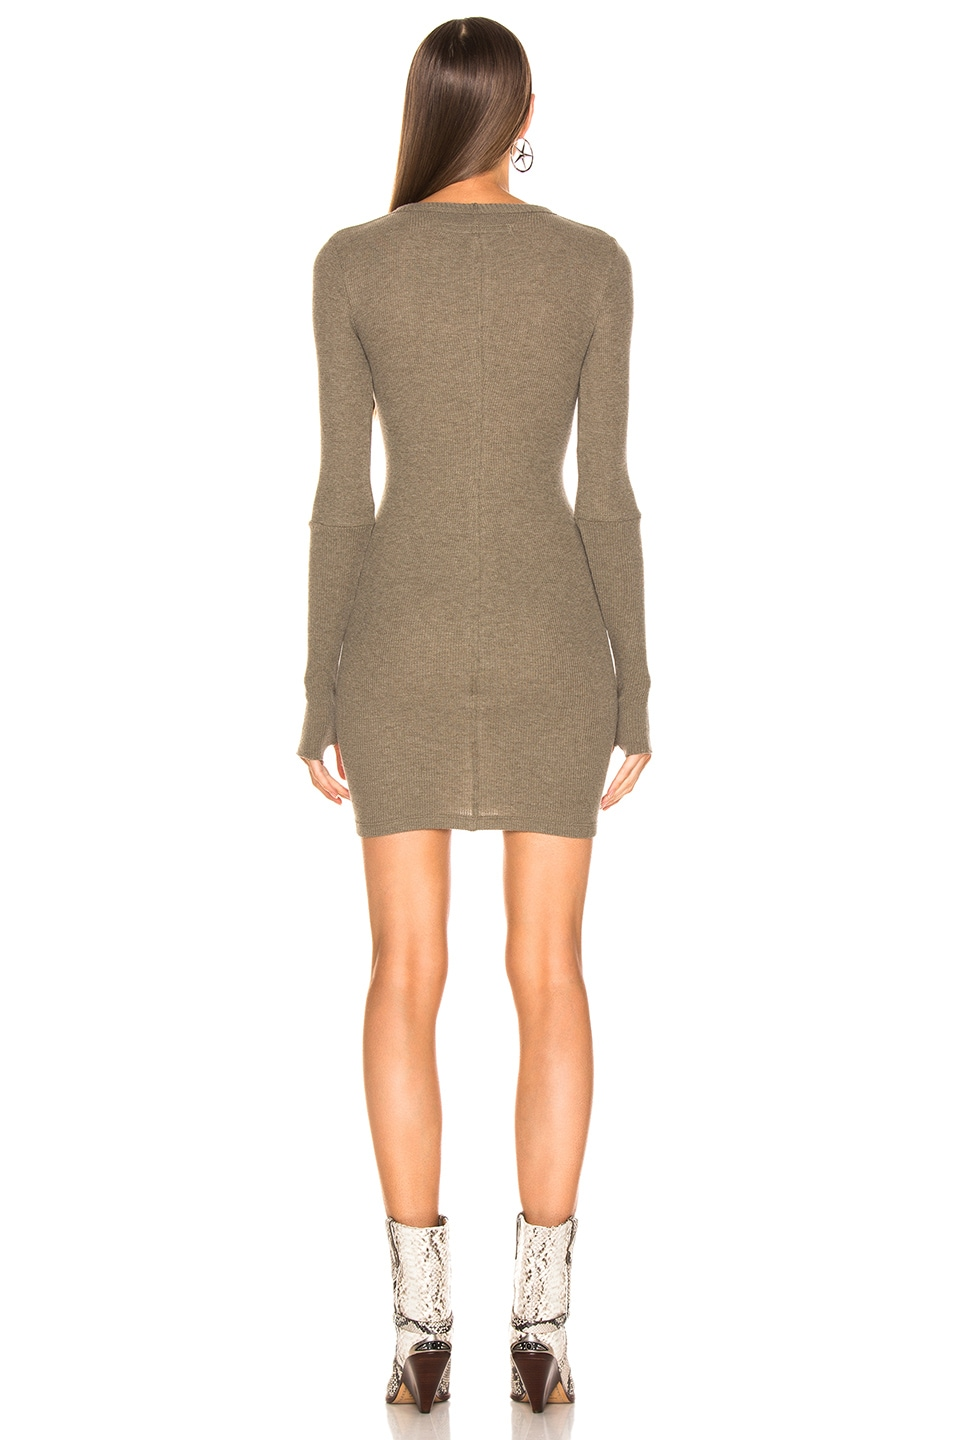 Image 3 of Enza Costa Cashmere Thermal Long Sleeve Crew Mini Dress in Pebble